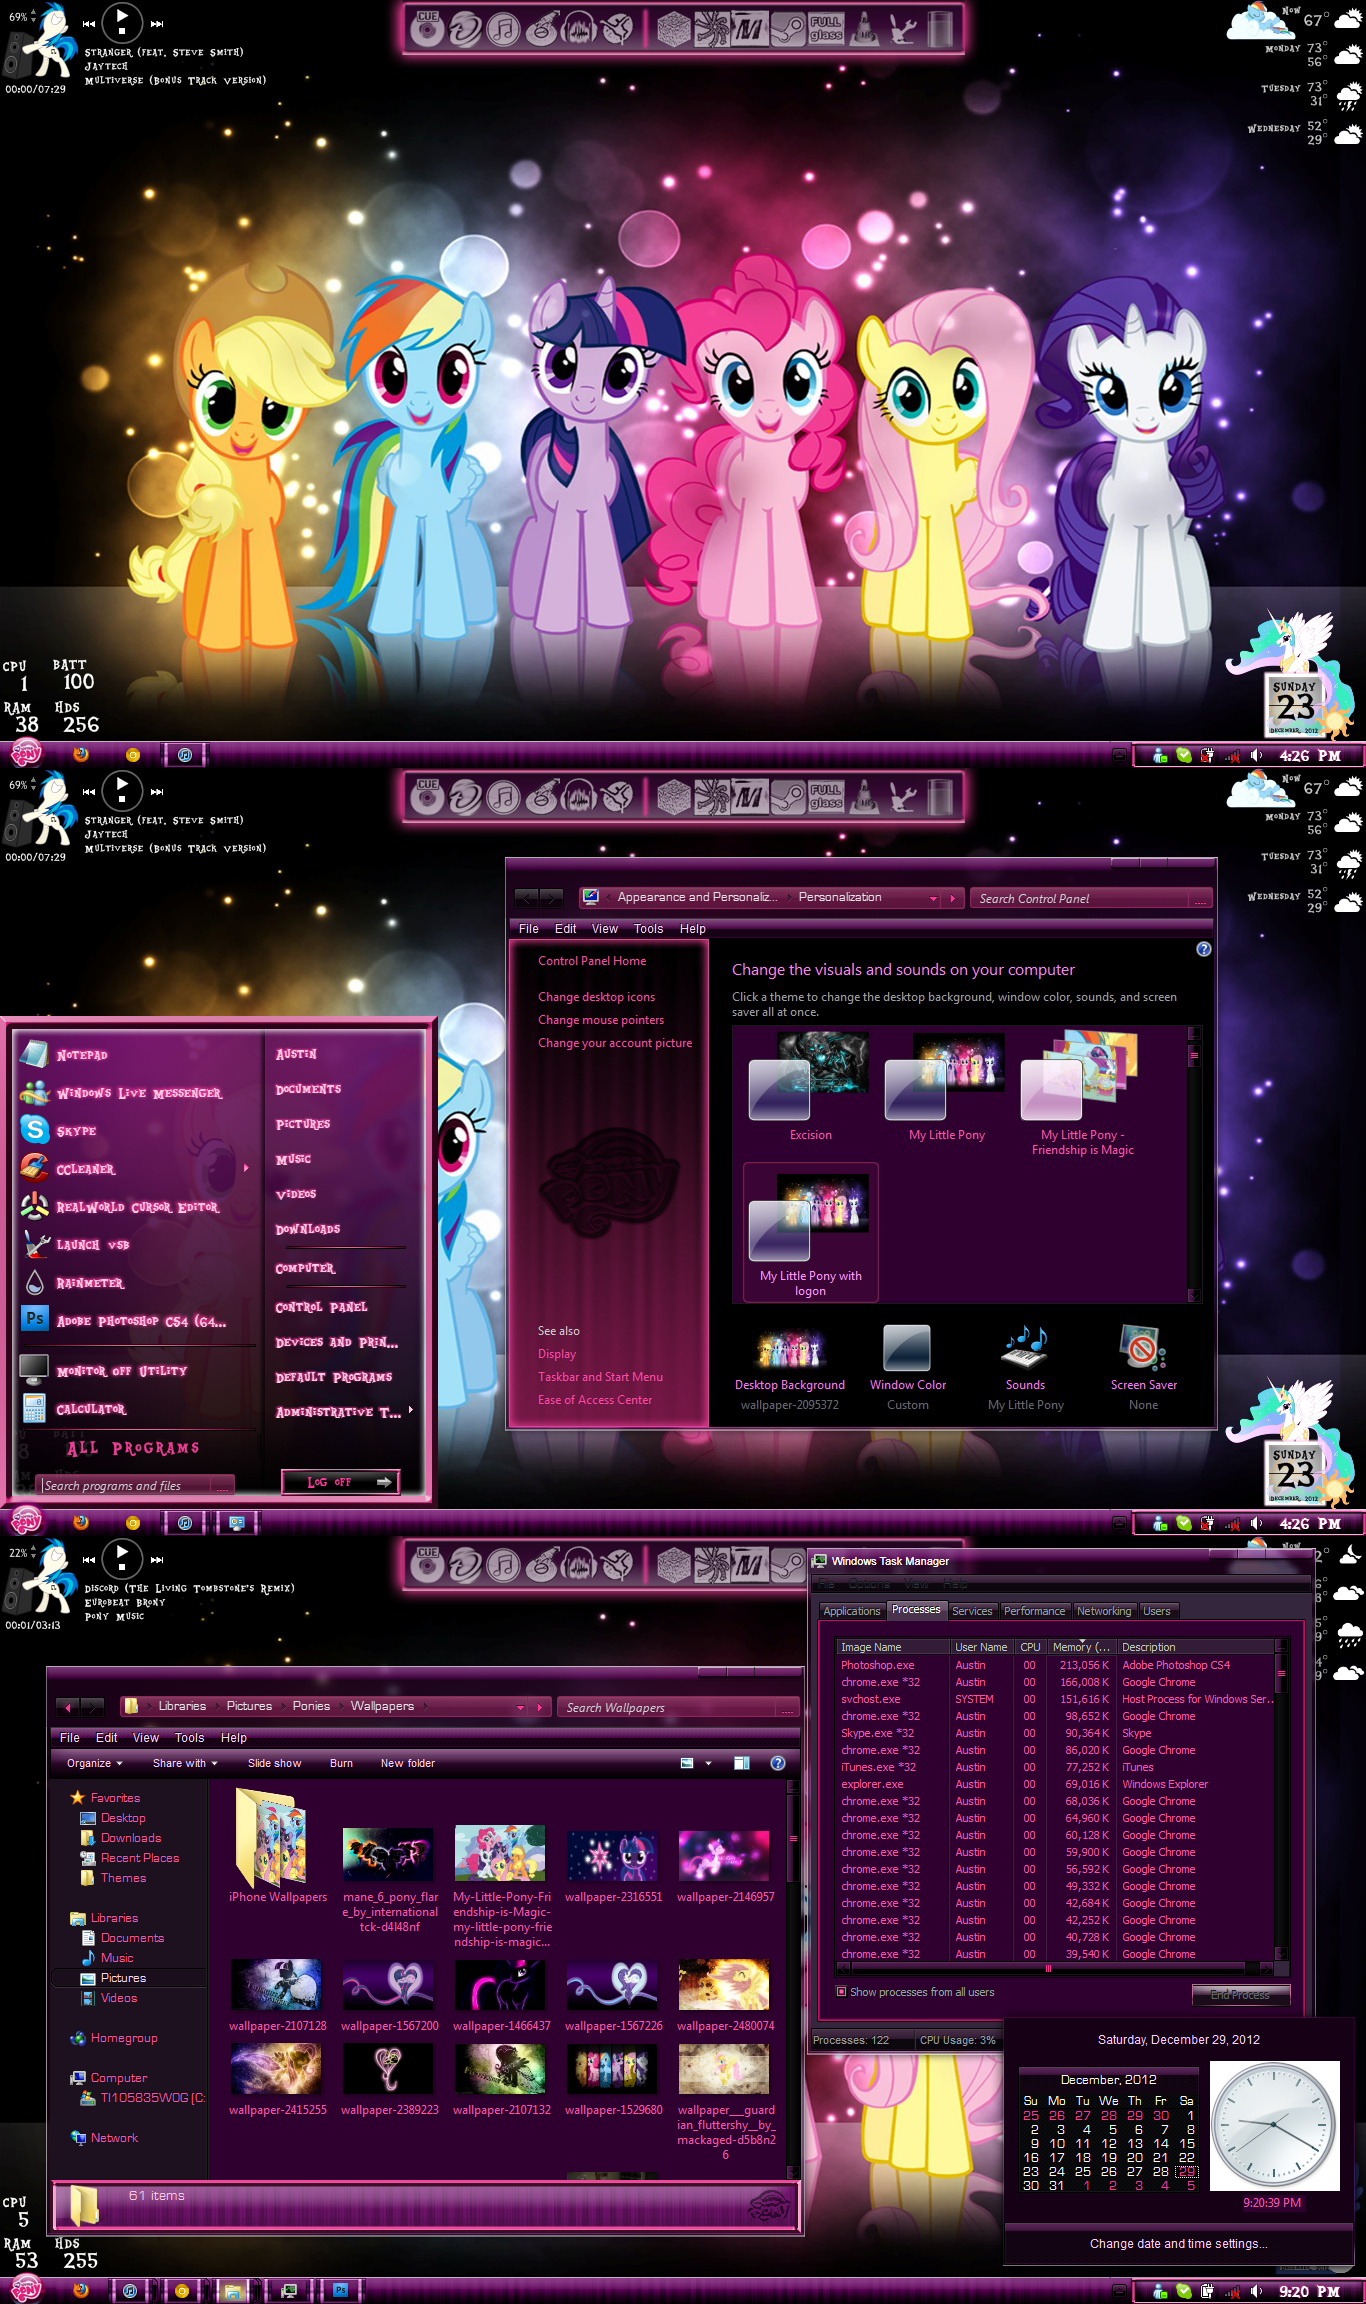 Google themes my little pony -  My Little Pony Theme Windows 7 By Thebronified